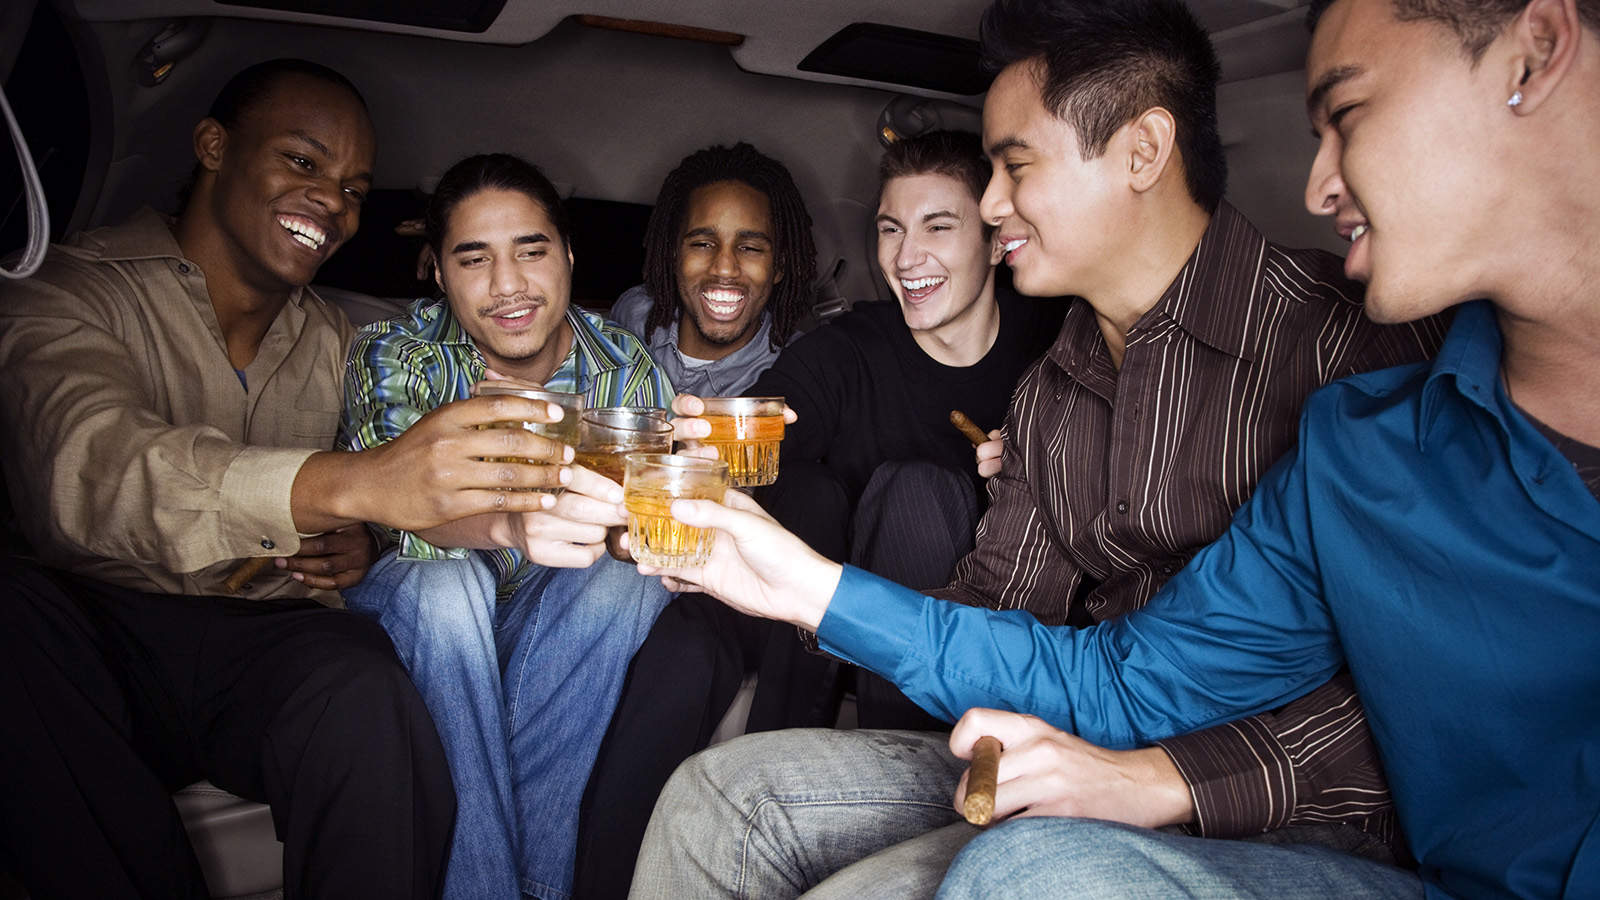 The Debaucherous History of Bachelor Parties